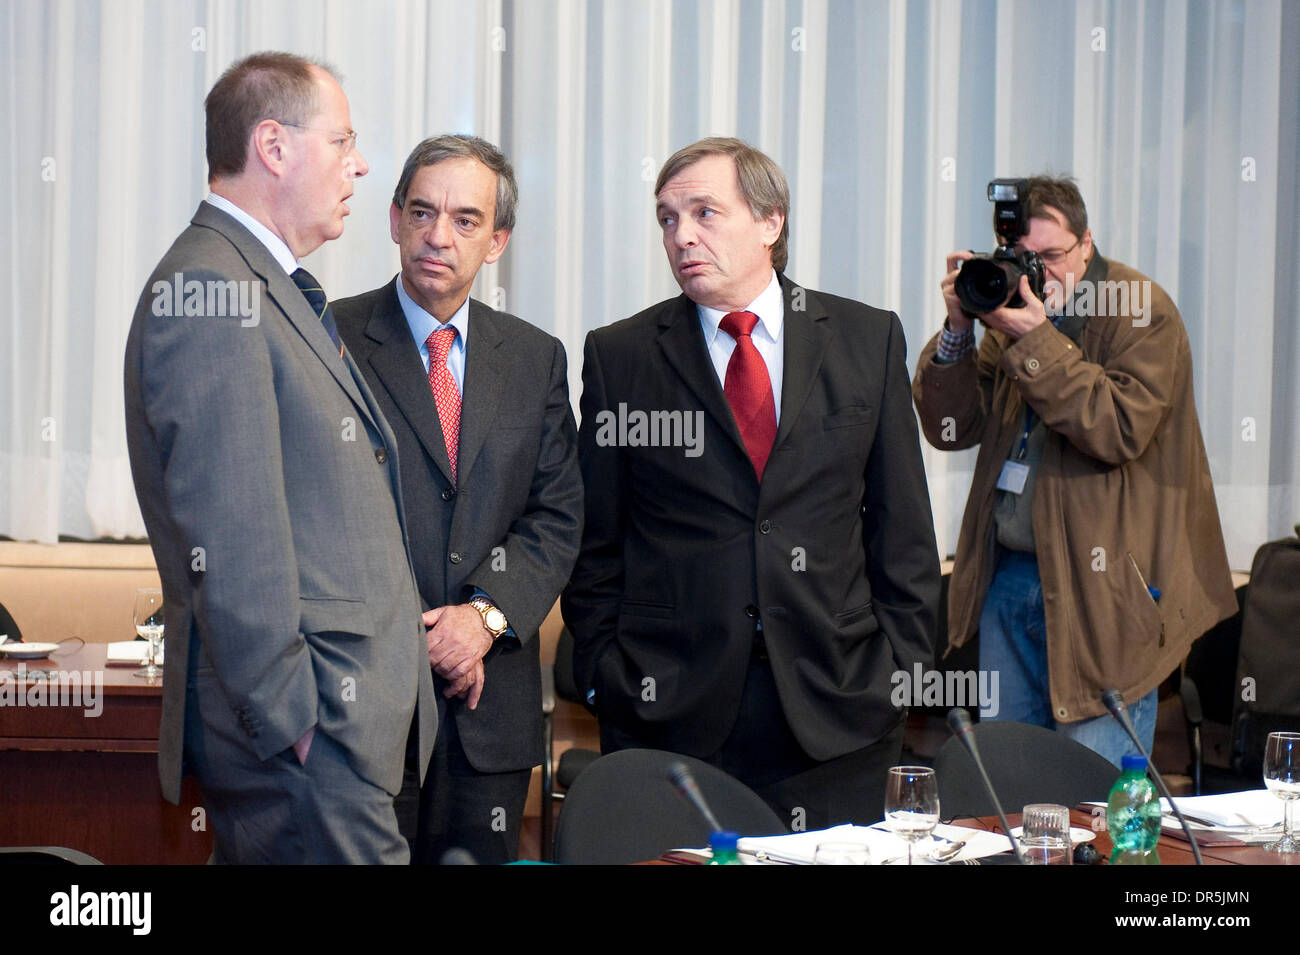 Jan 19, 2009 - Brussels, Belgium - Germany's Finance Minister PEER STEINBRUECK (L) chats with his Cyprus counterpart CHARILAOS STAVRAKIS and Luxembourg counterpart JEANNOT KRECKE (R) at the start of a Eurozone Finance ministers meeting in Brussels (Credit Image: © Wiktor Dabkowski/ZUMA Press) - Stock Image